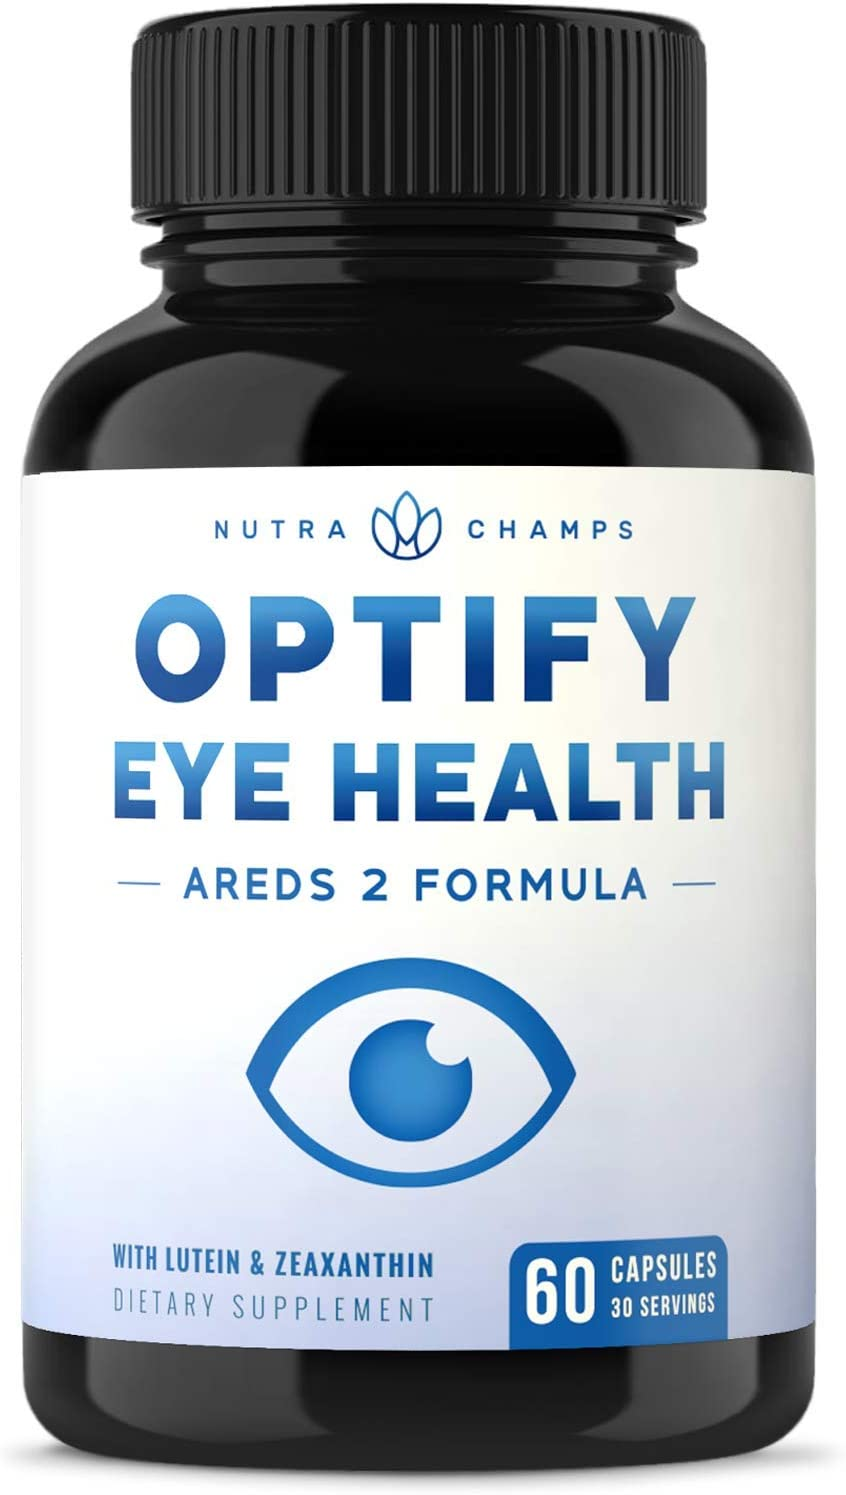 Eye Vitamins with Lutein & Zeaxanthin - AREDS 2 Formula for Macular Degeneration, Strain, Dry Eyes & Vision Health Support - Eye Care Ocular Supplement Enhanced with Omega 3 Powder & Bilberry Extract